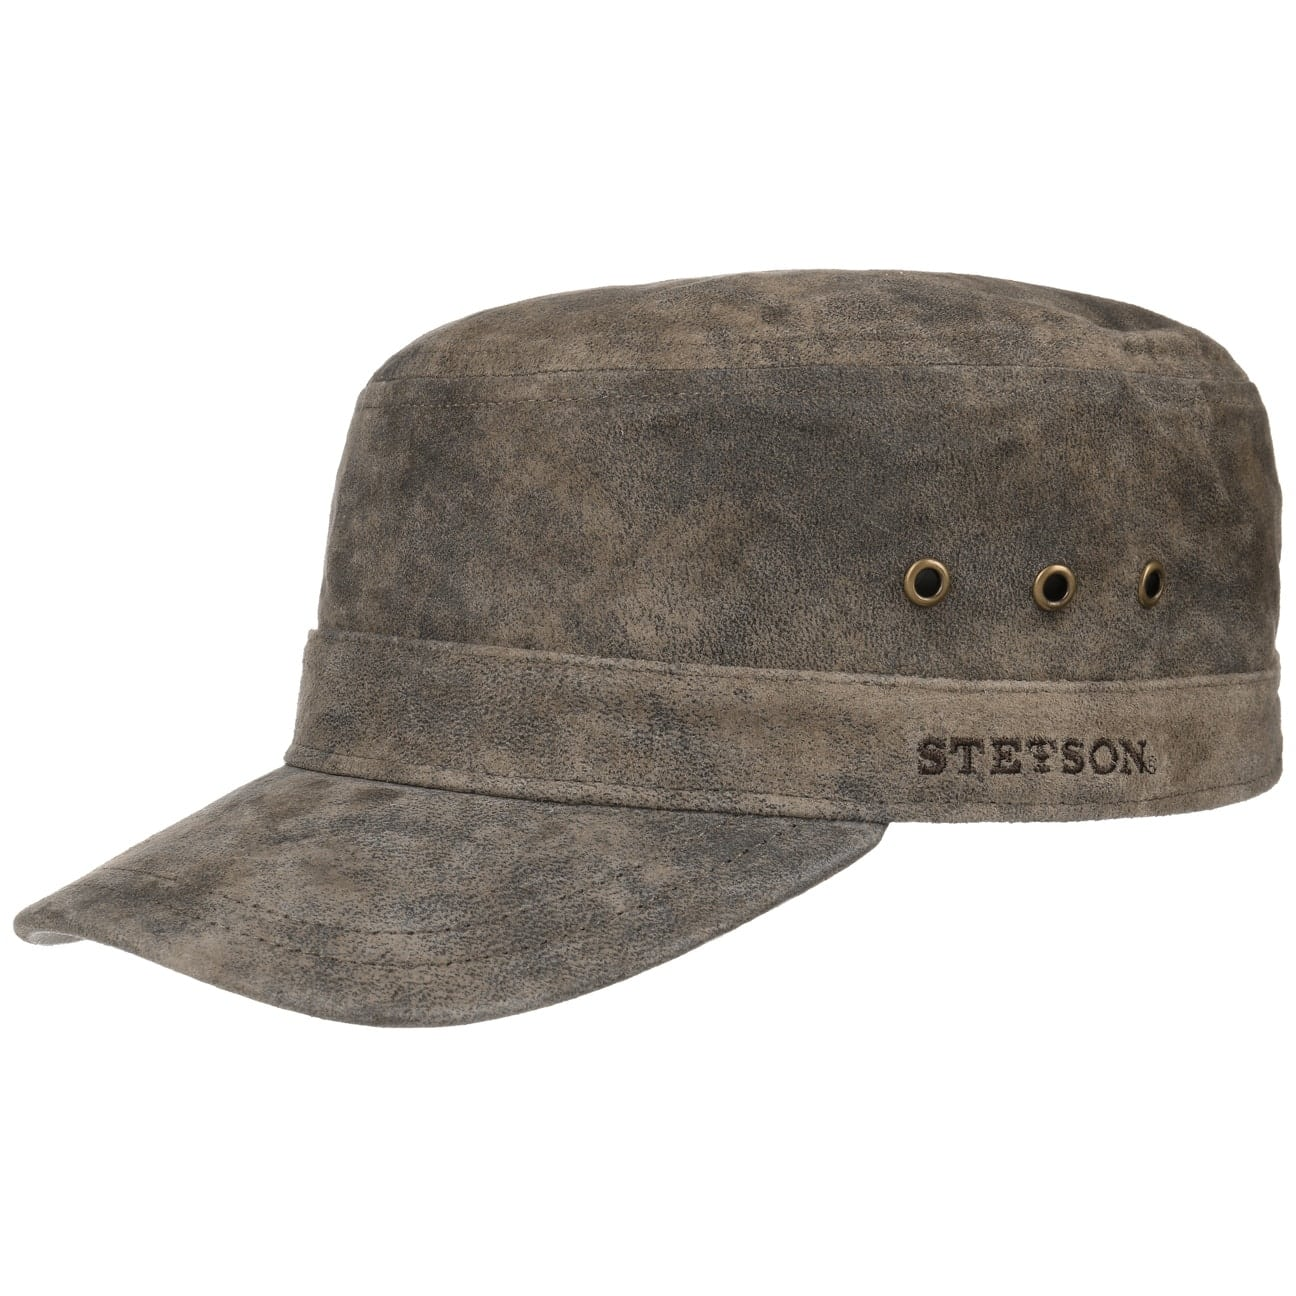 raymore-pigskin-armycap-by-stetson-sommercap